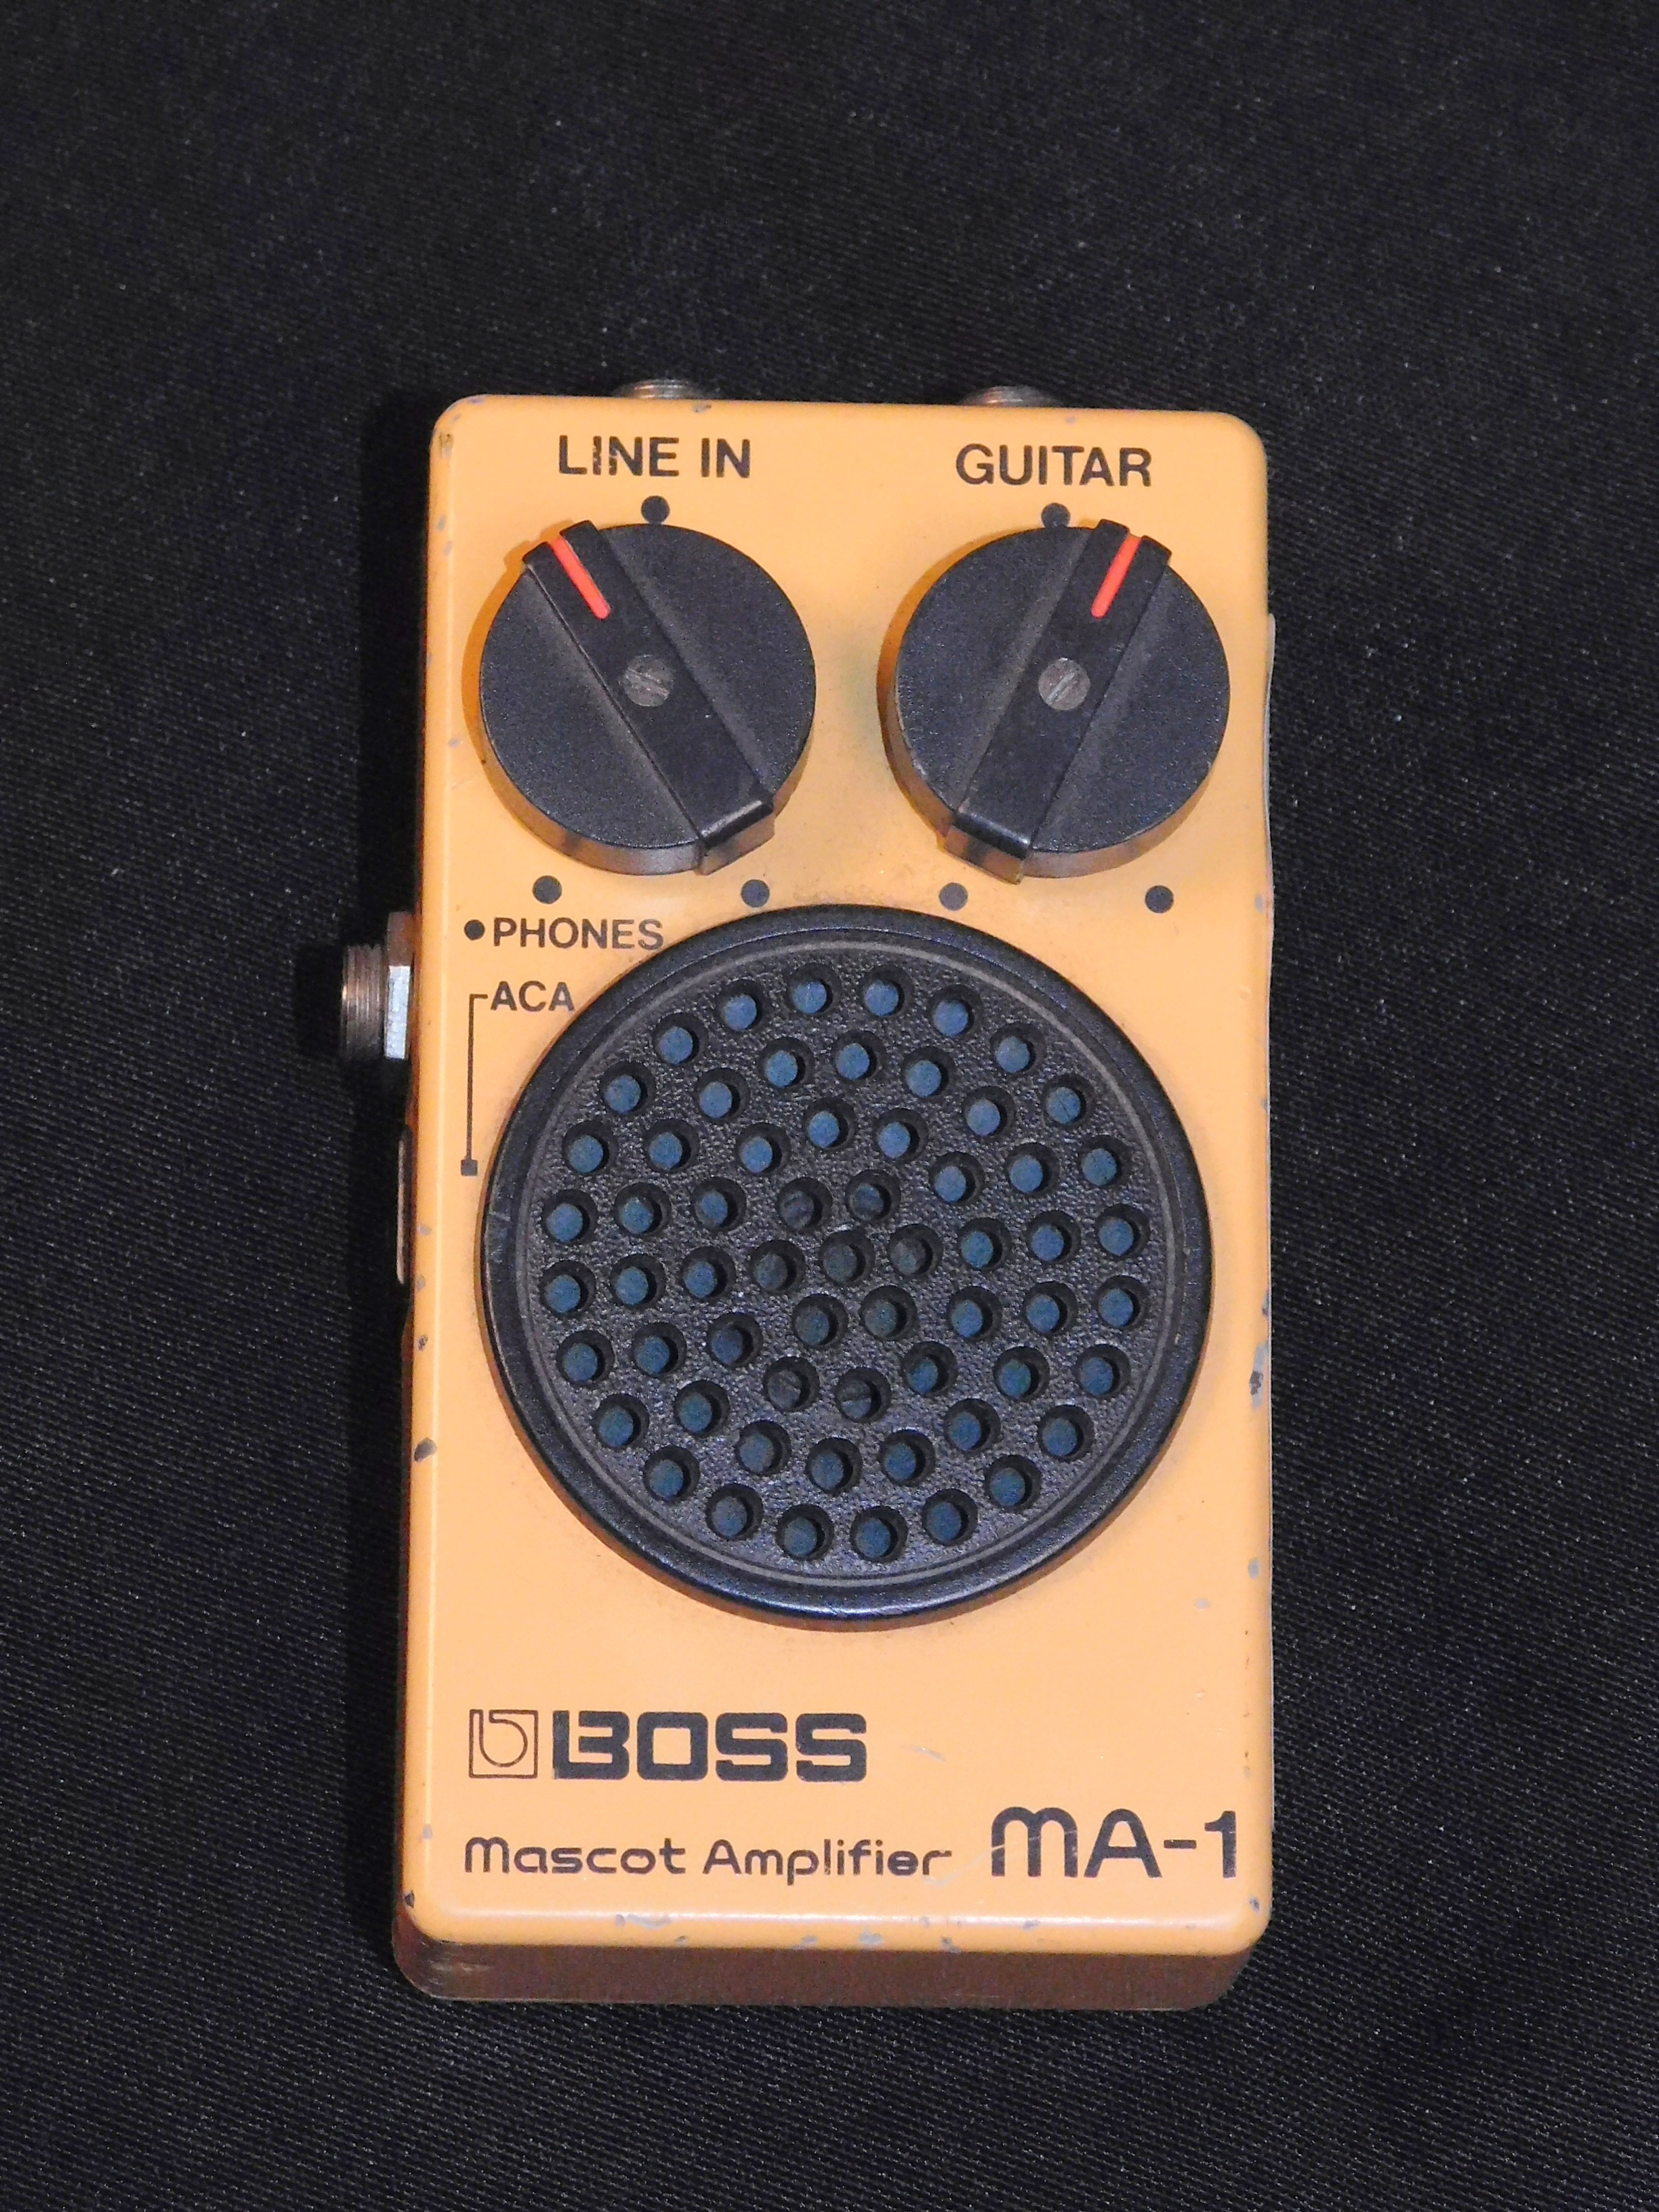 BOSS MA-1 MASCOT AMPLIFIER **VINTAGE** MA1 - PORTABLE AMP/HEADPHONE AMP TESTED